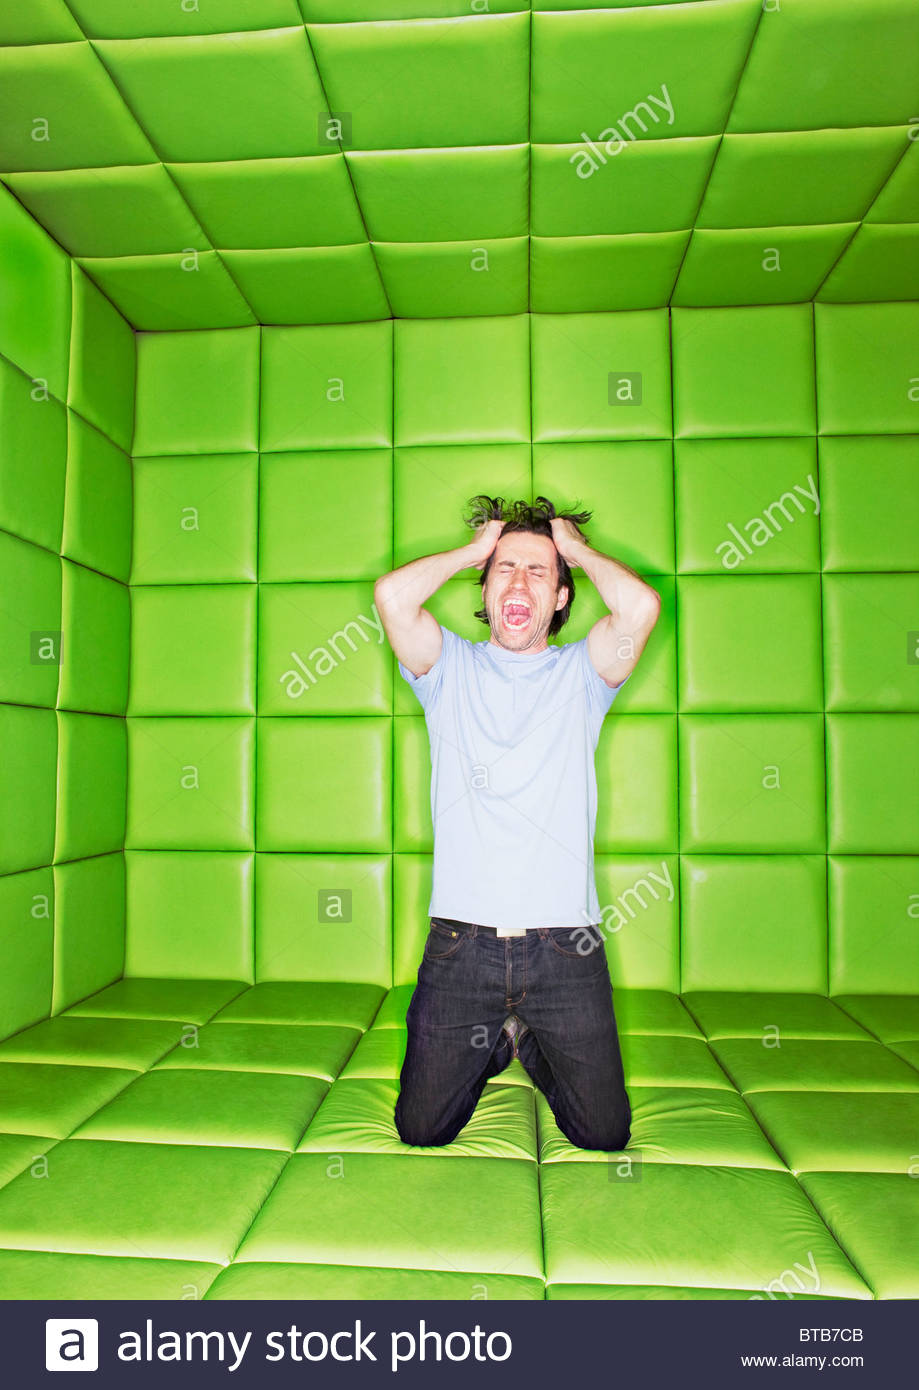 Padded Room Stock Photos Amp Padded Room Stock Images Alamy